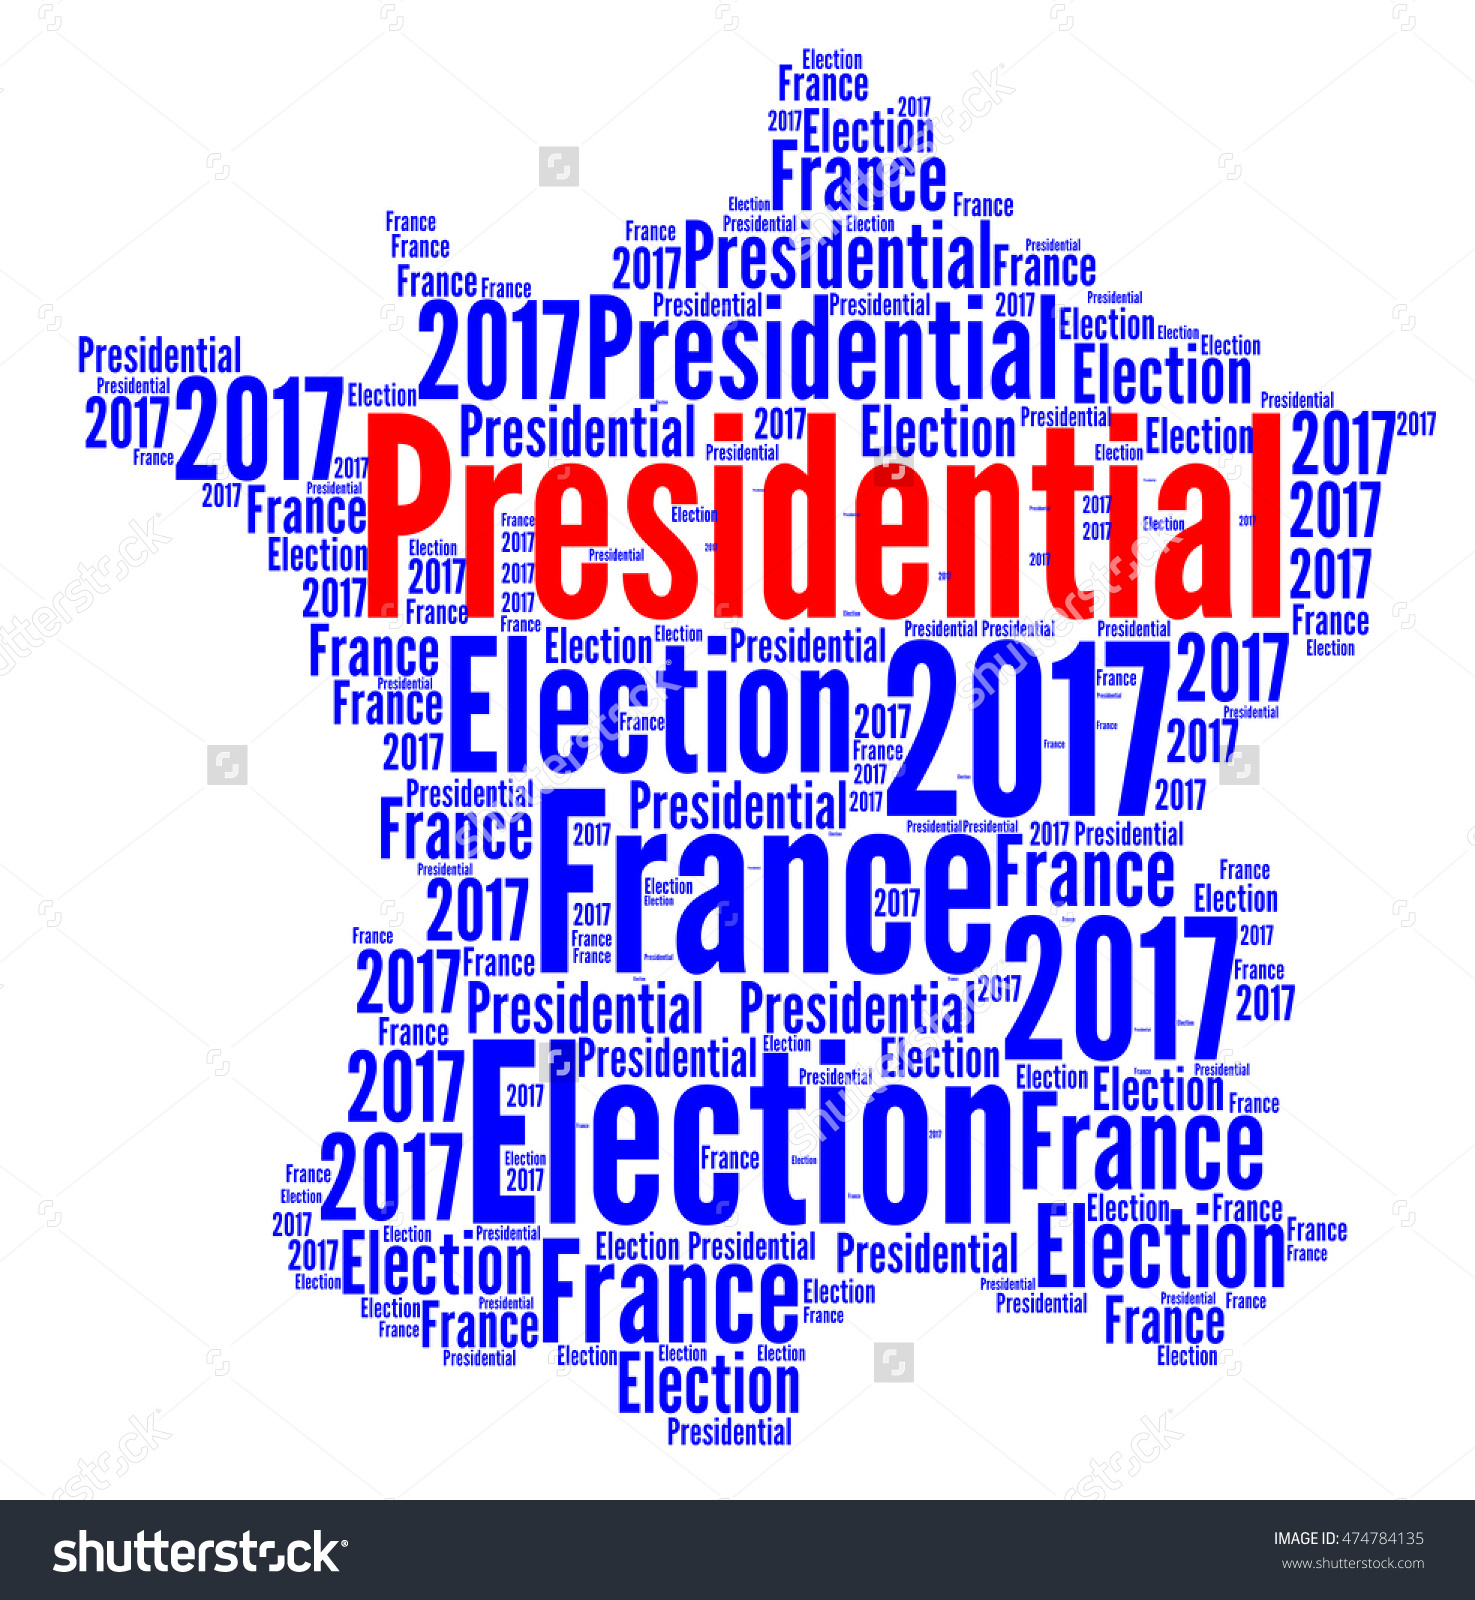 next french presidential election